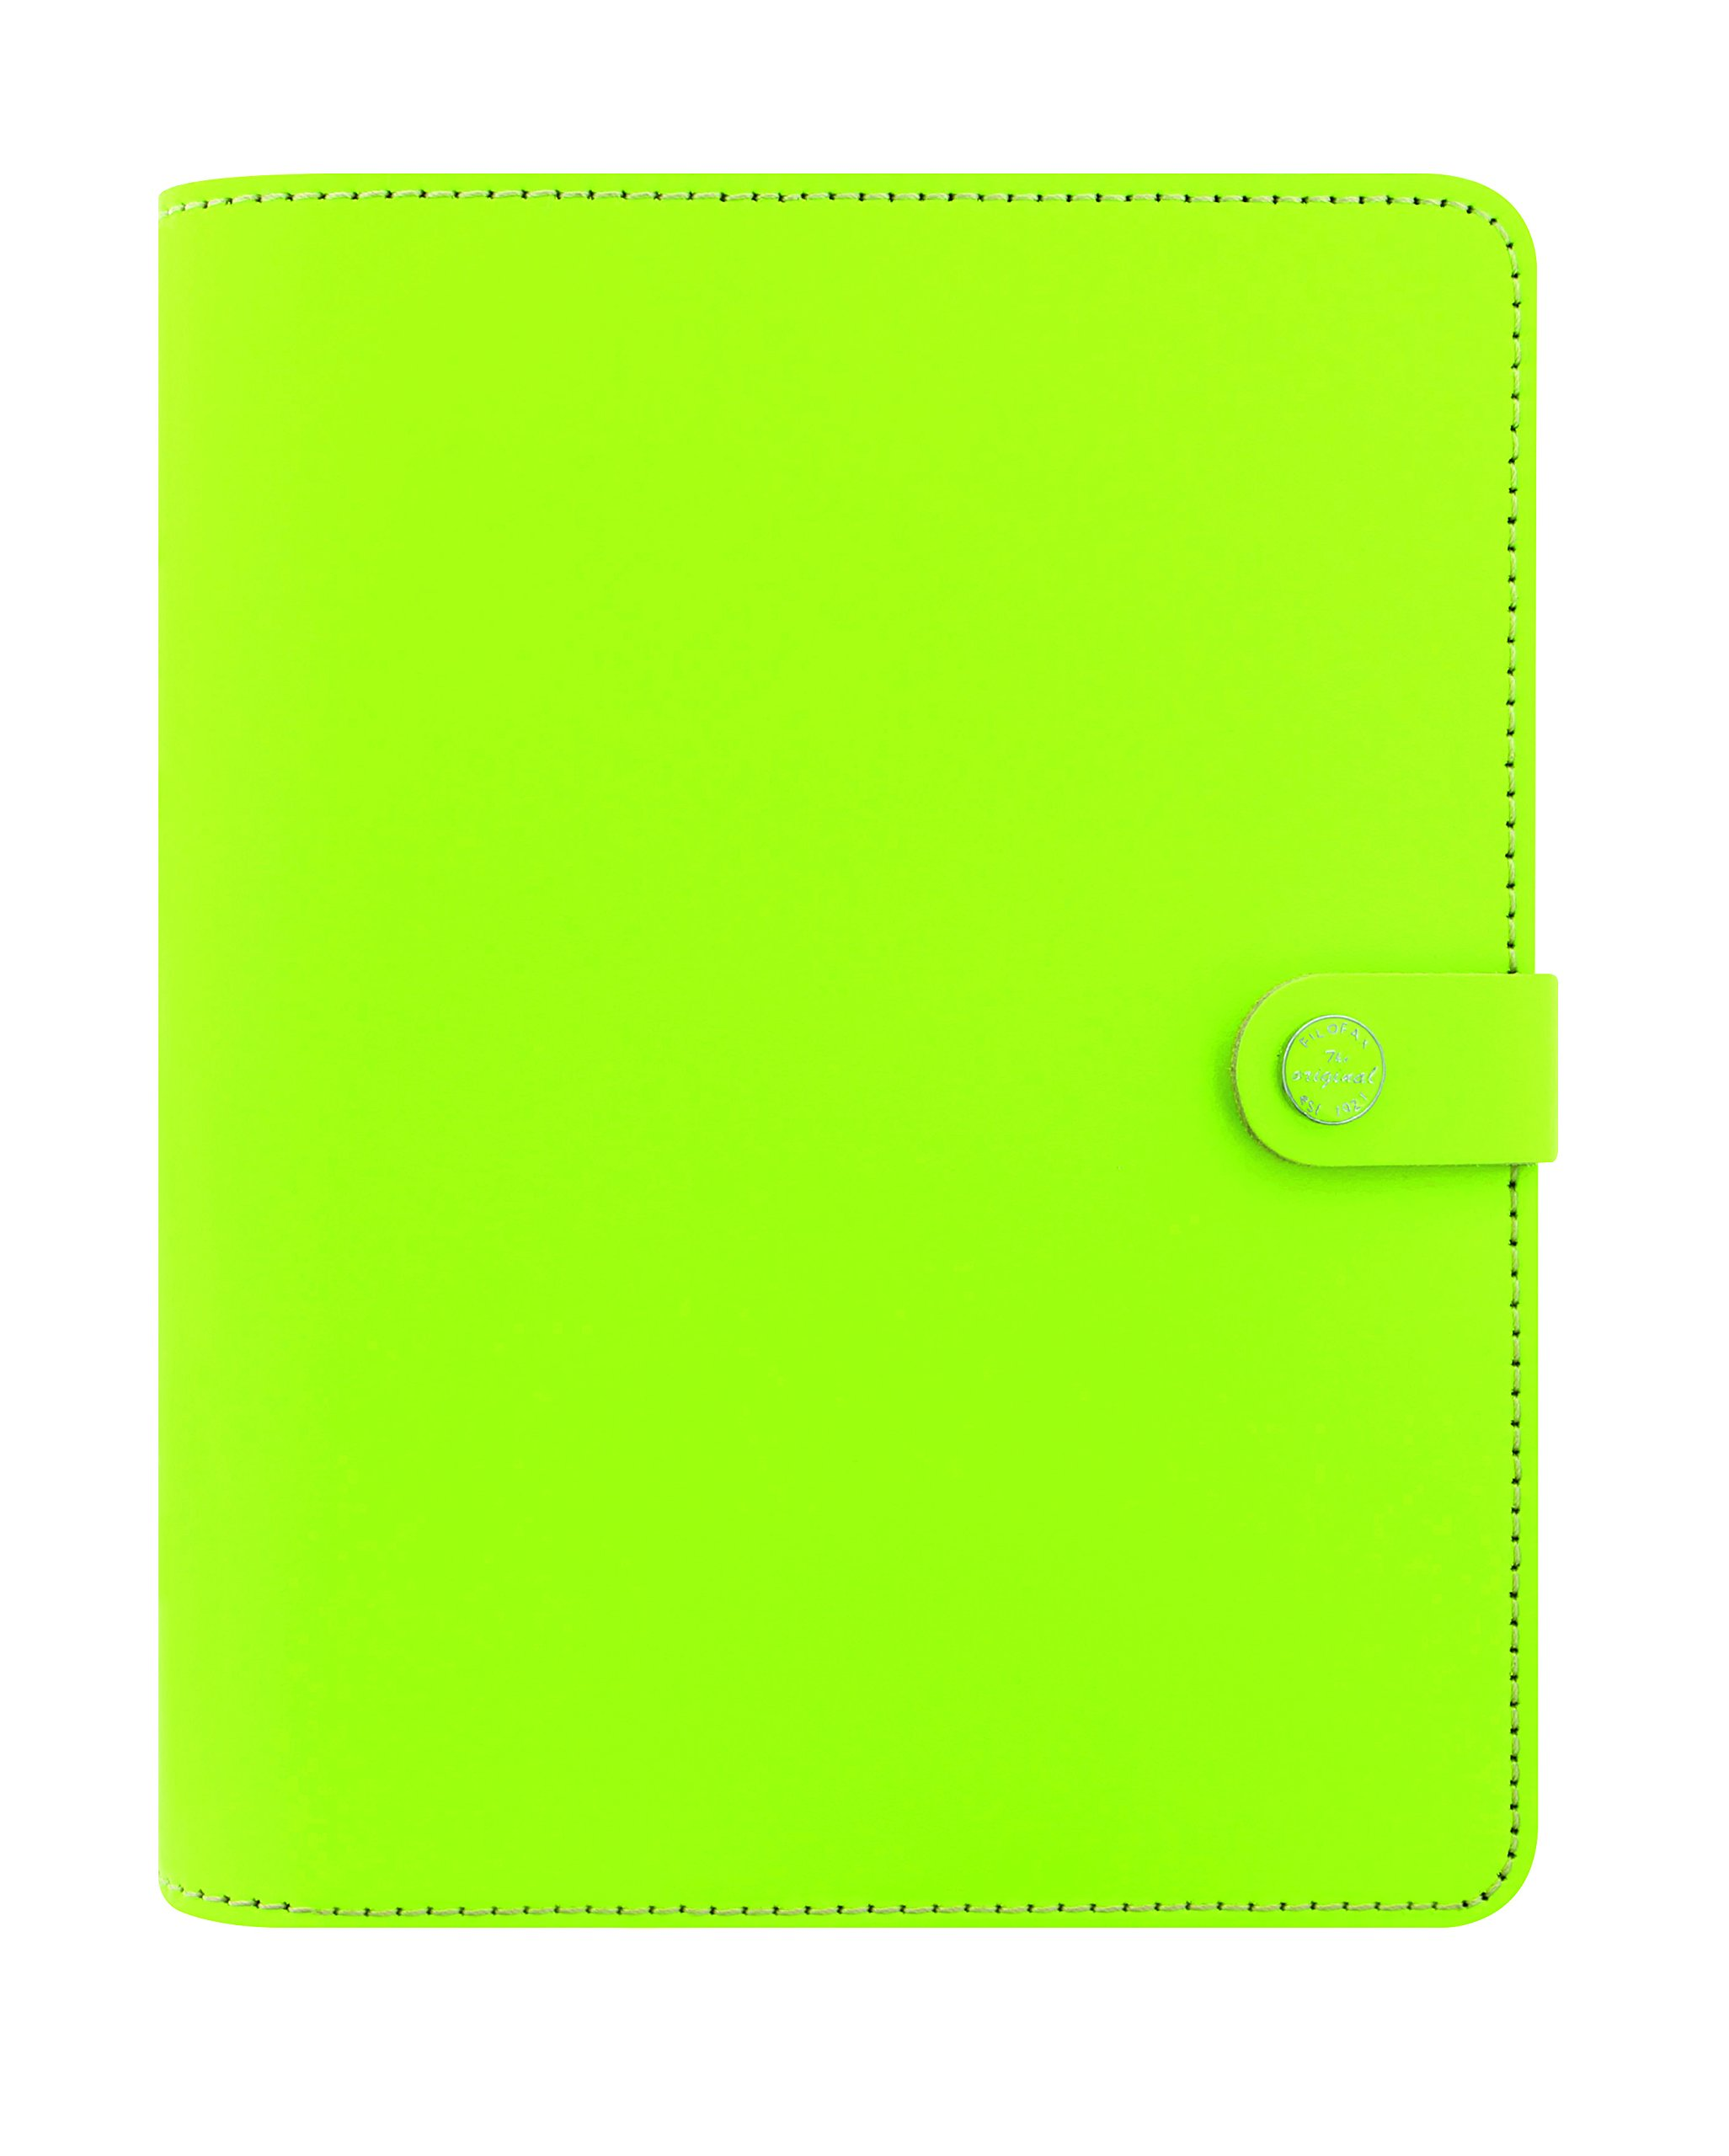 Filofax A5 The Original Organiser - Pear